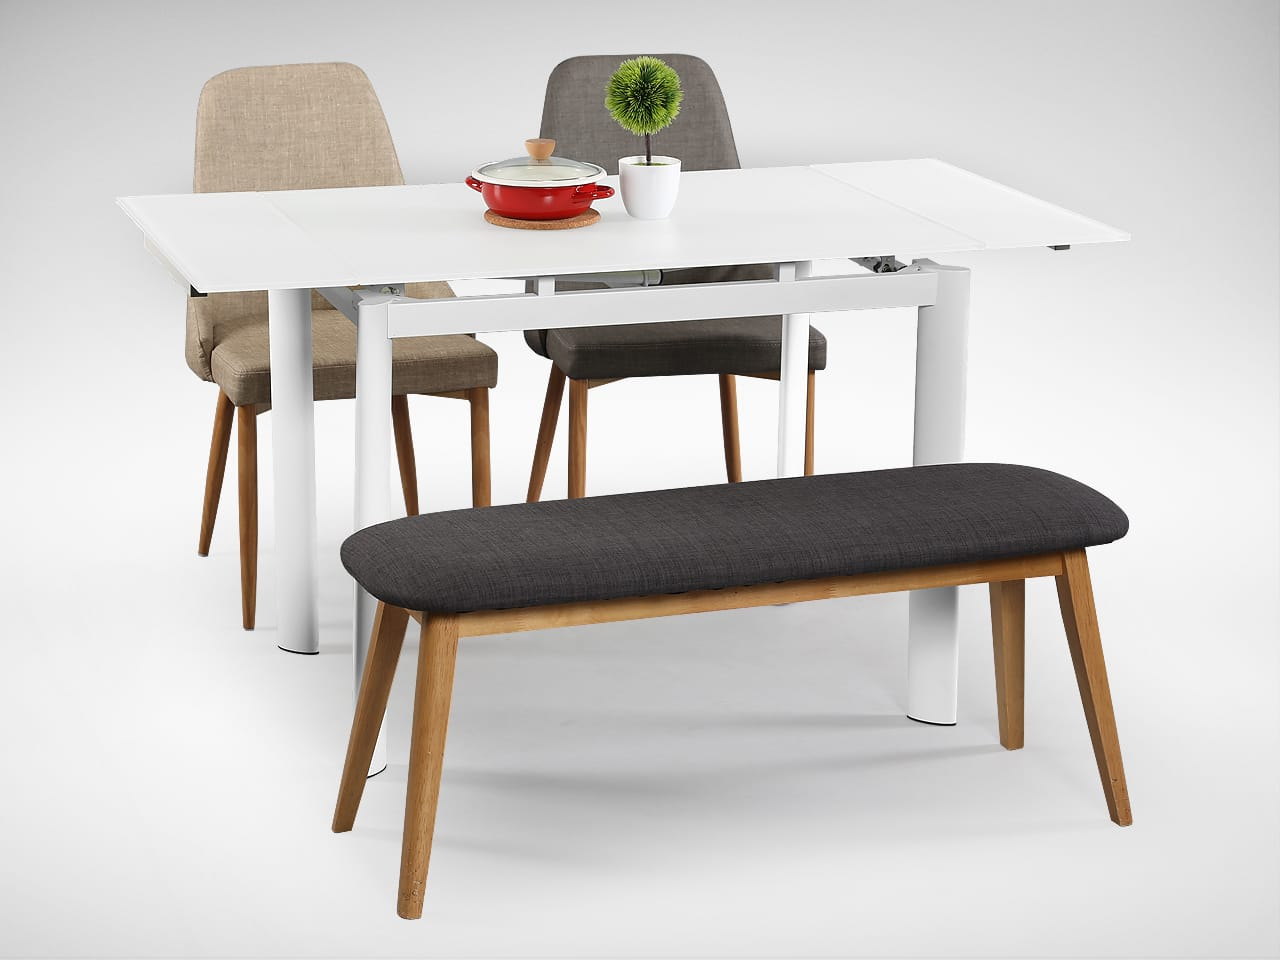 [Vovo Extendable Table, Beatrice Sidechair & Barett Bench]